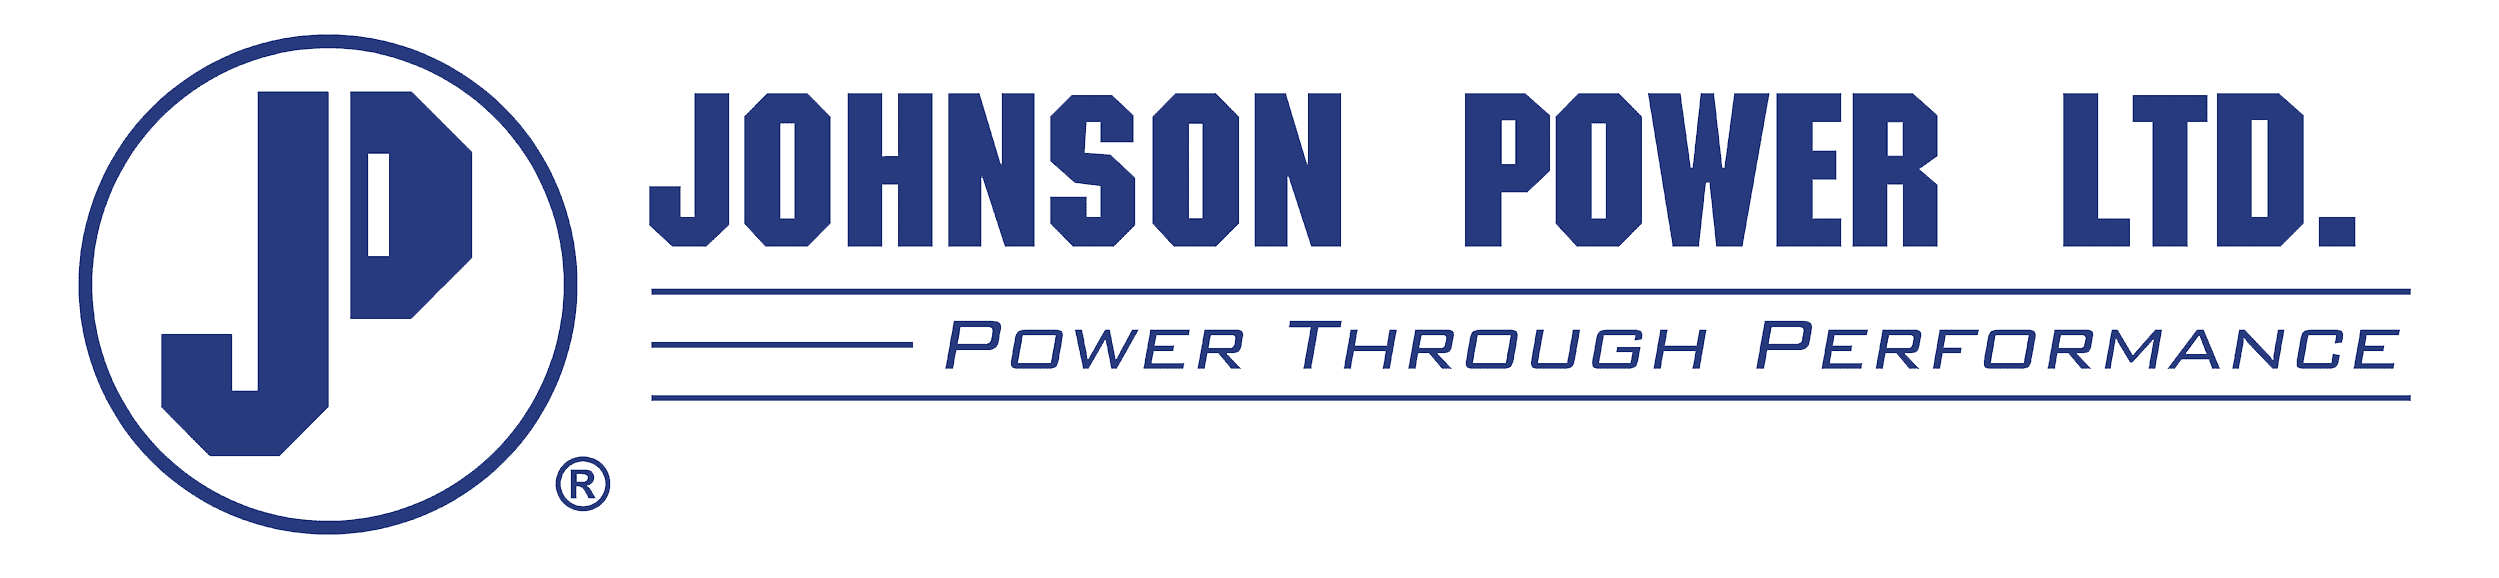 Johnson Power